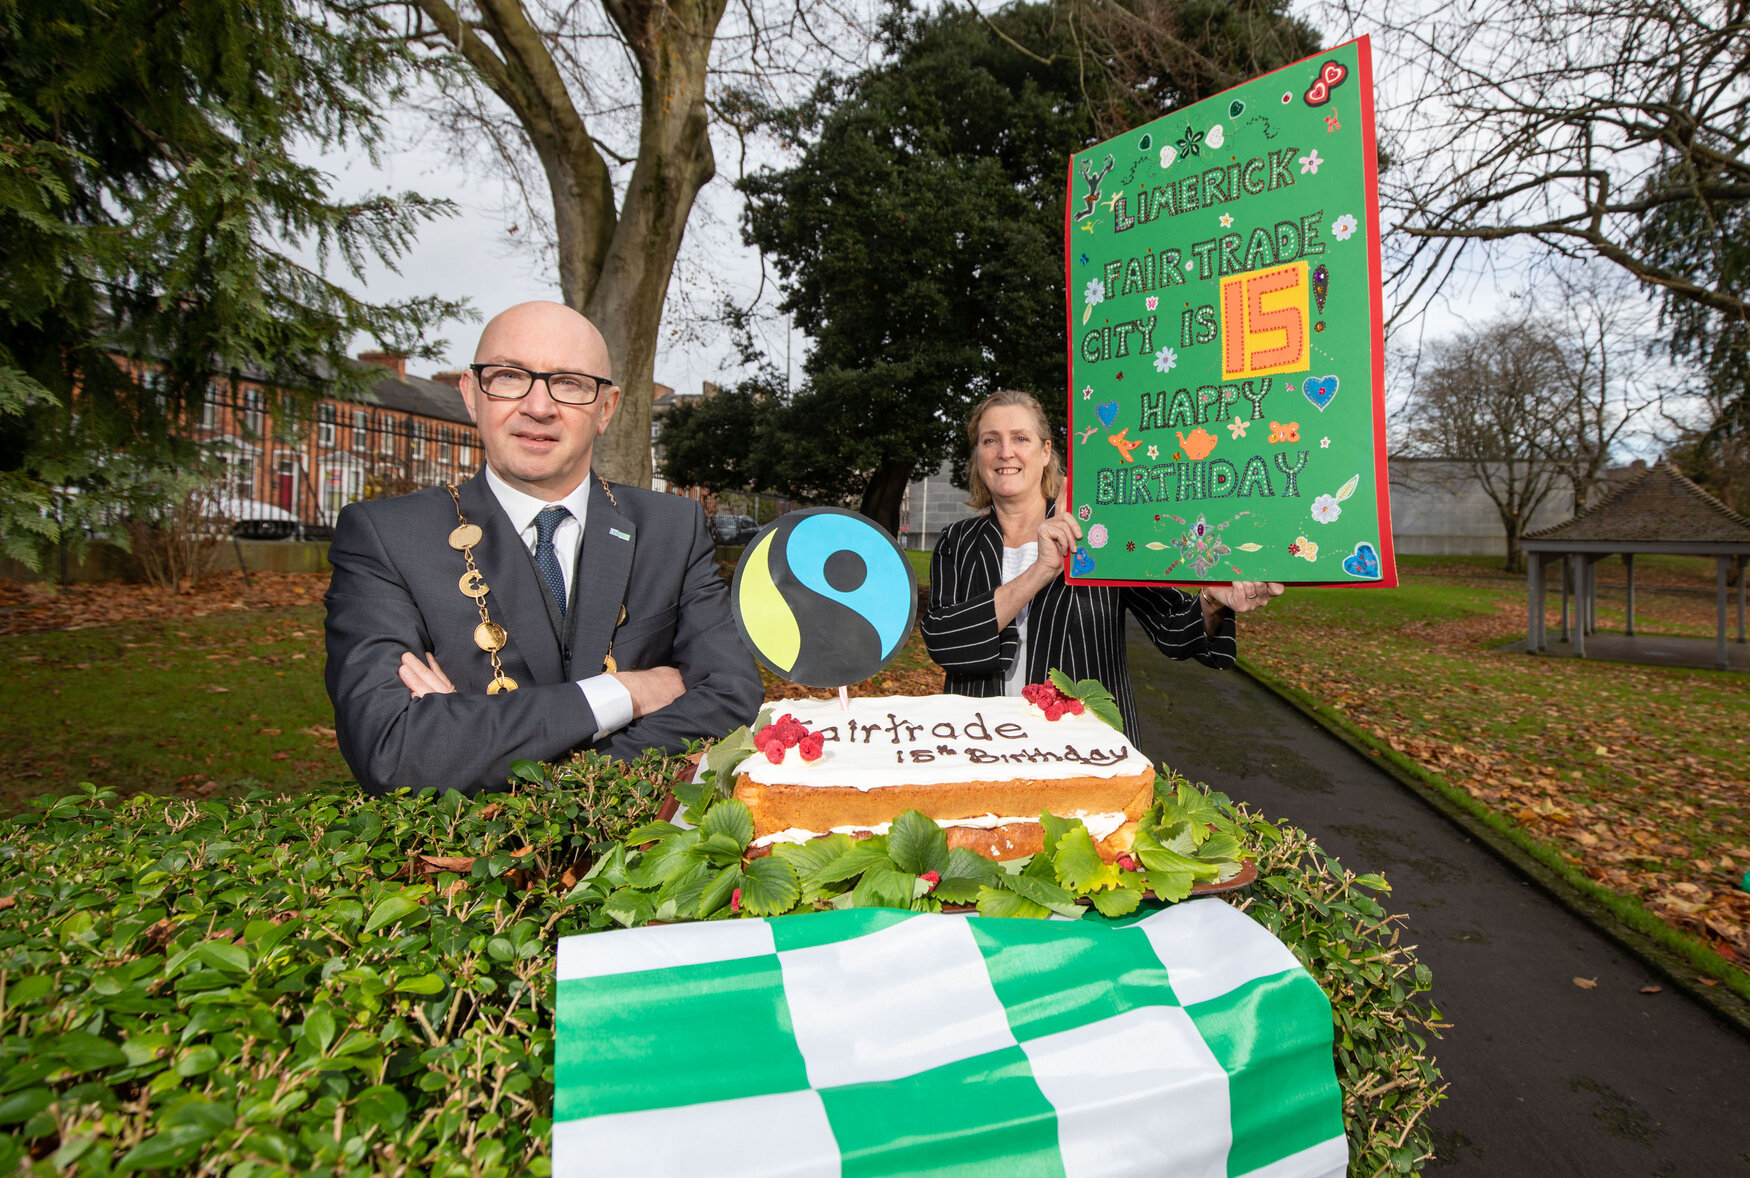 Mayor Michael Collins and Helen O'Donnell celebrating Fairtrade Limerick's 15th Birthday last November. Picture: Alan Place